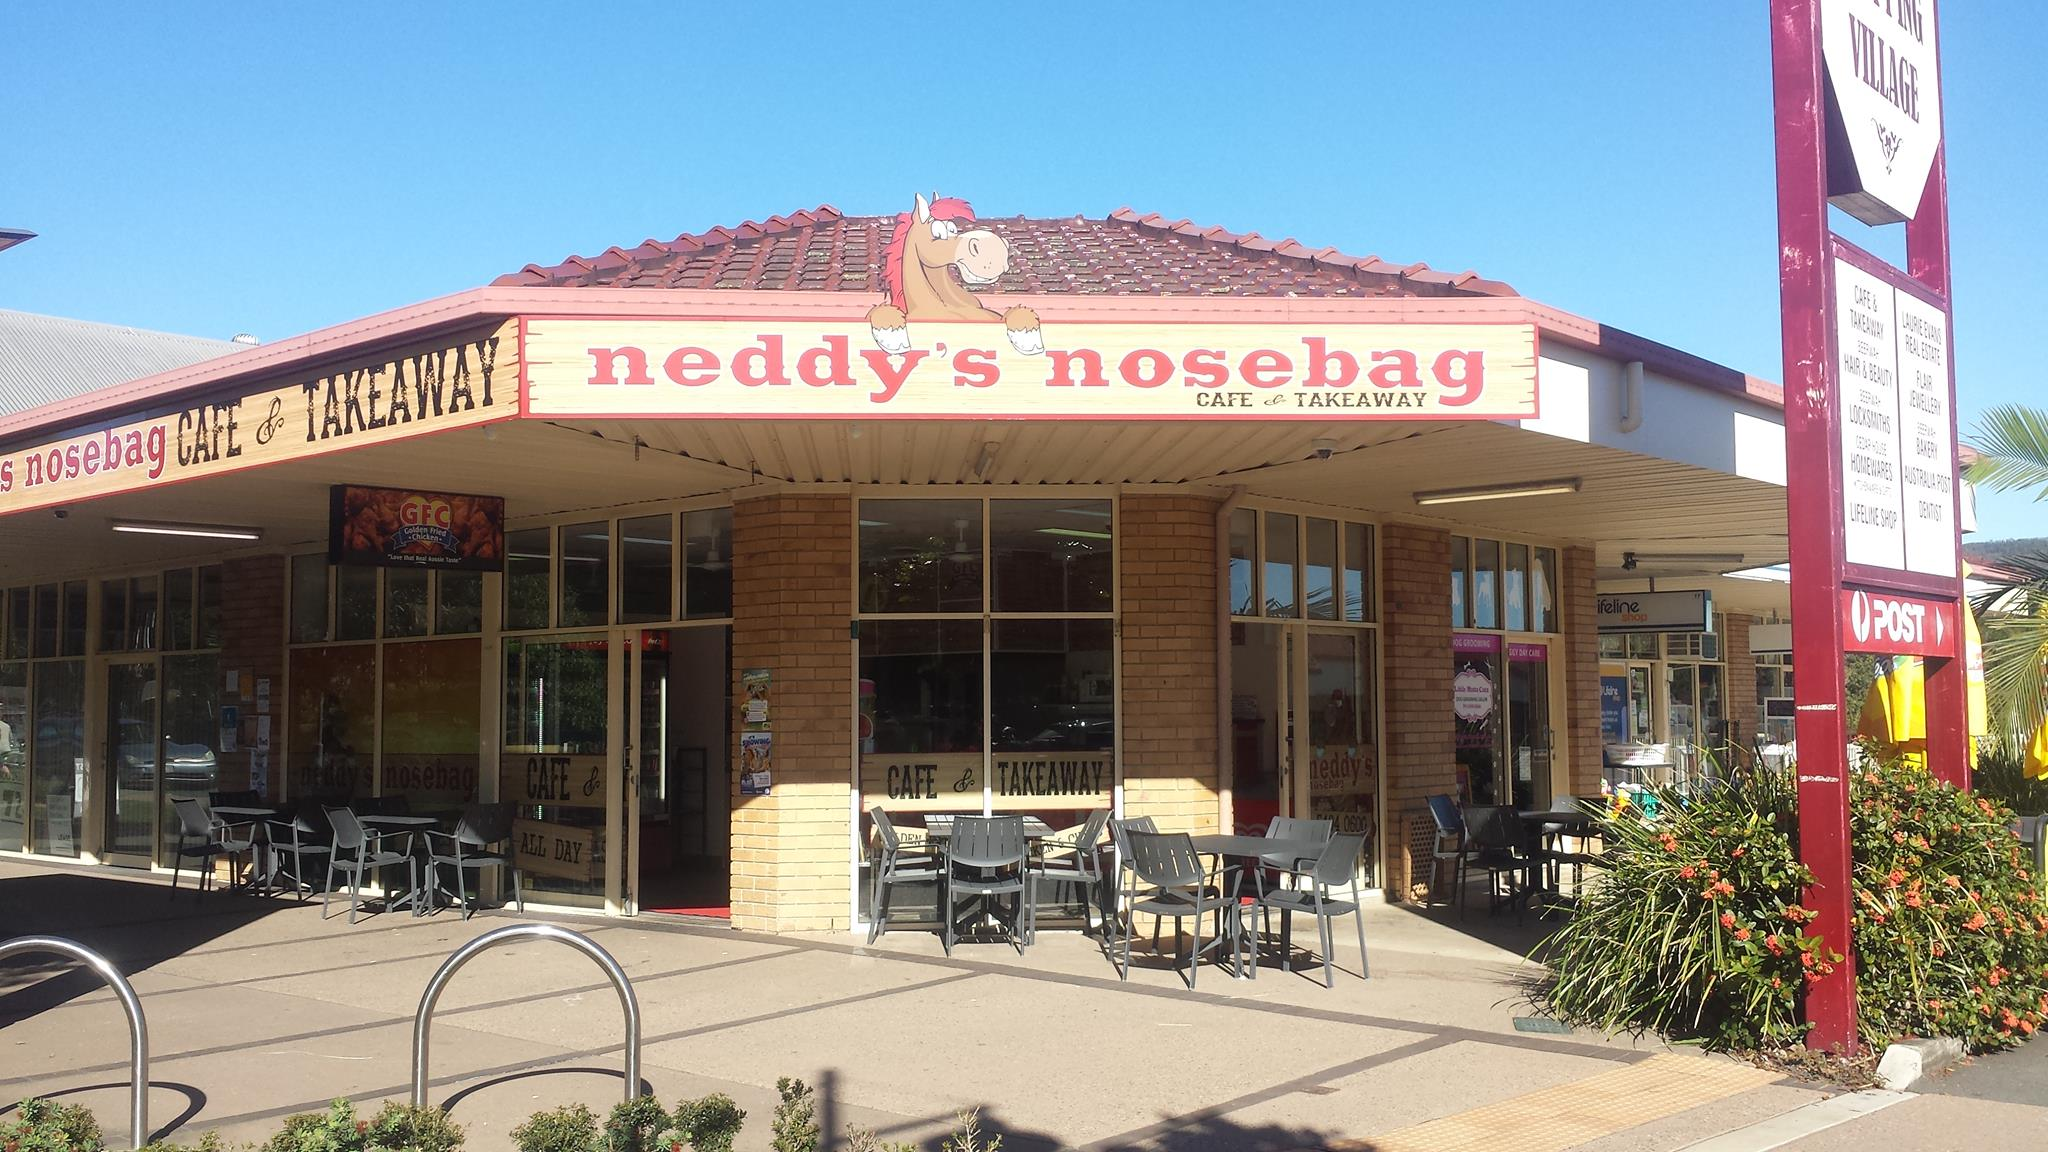 NEDDY'S NOSE BAG